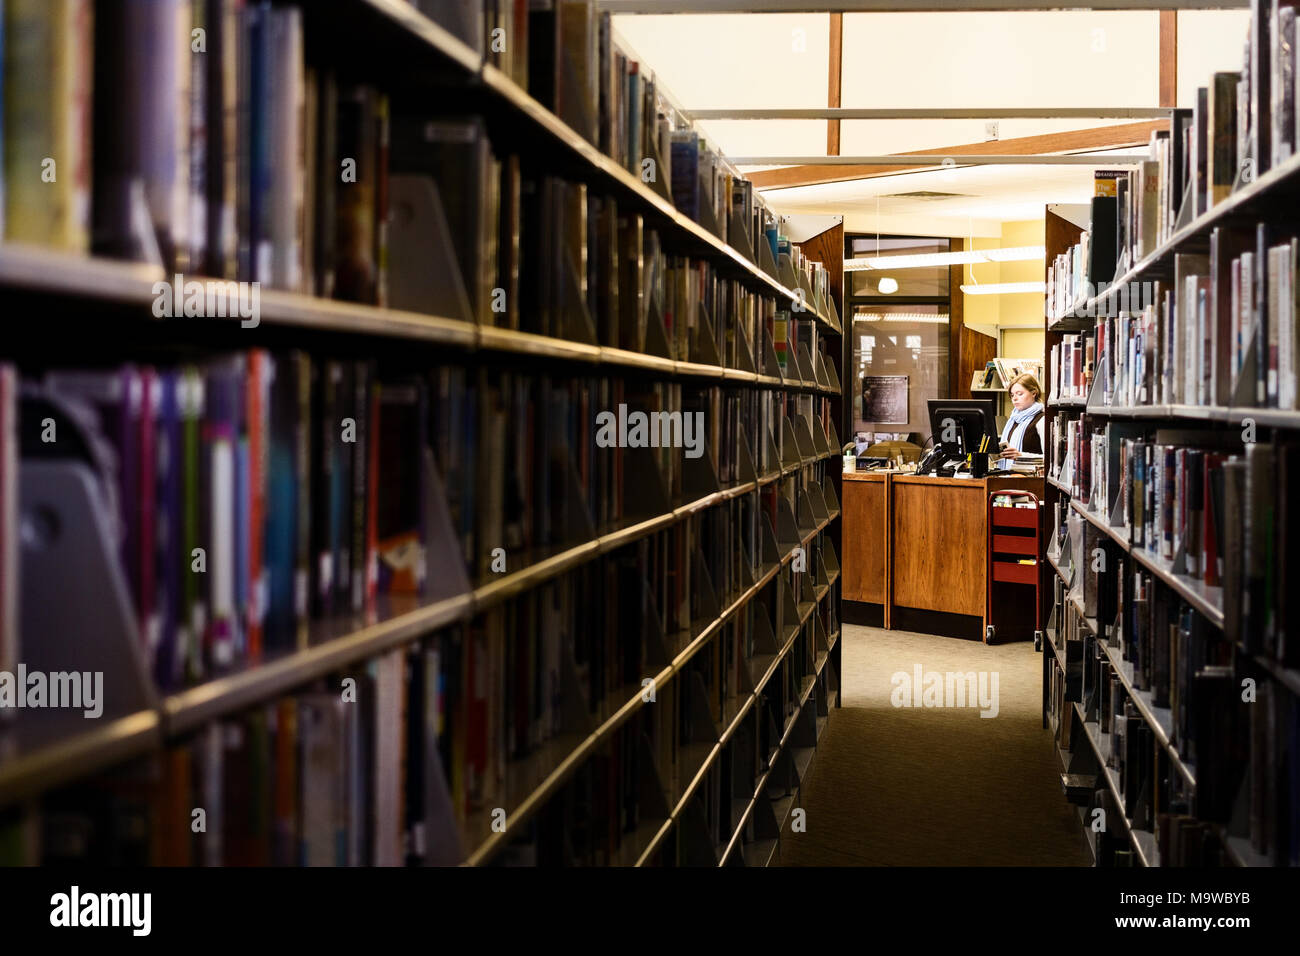 Lines of book shelves lead to a librarian at a desk - Stock Image